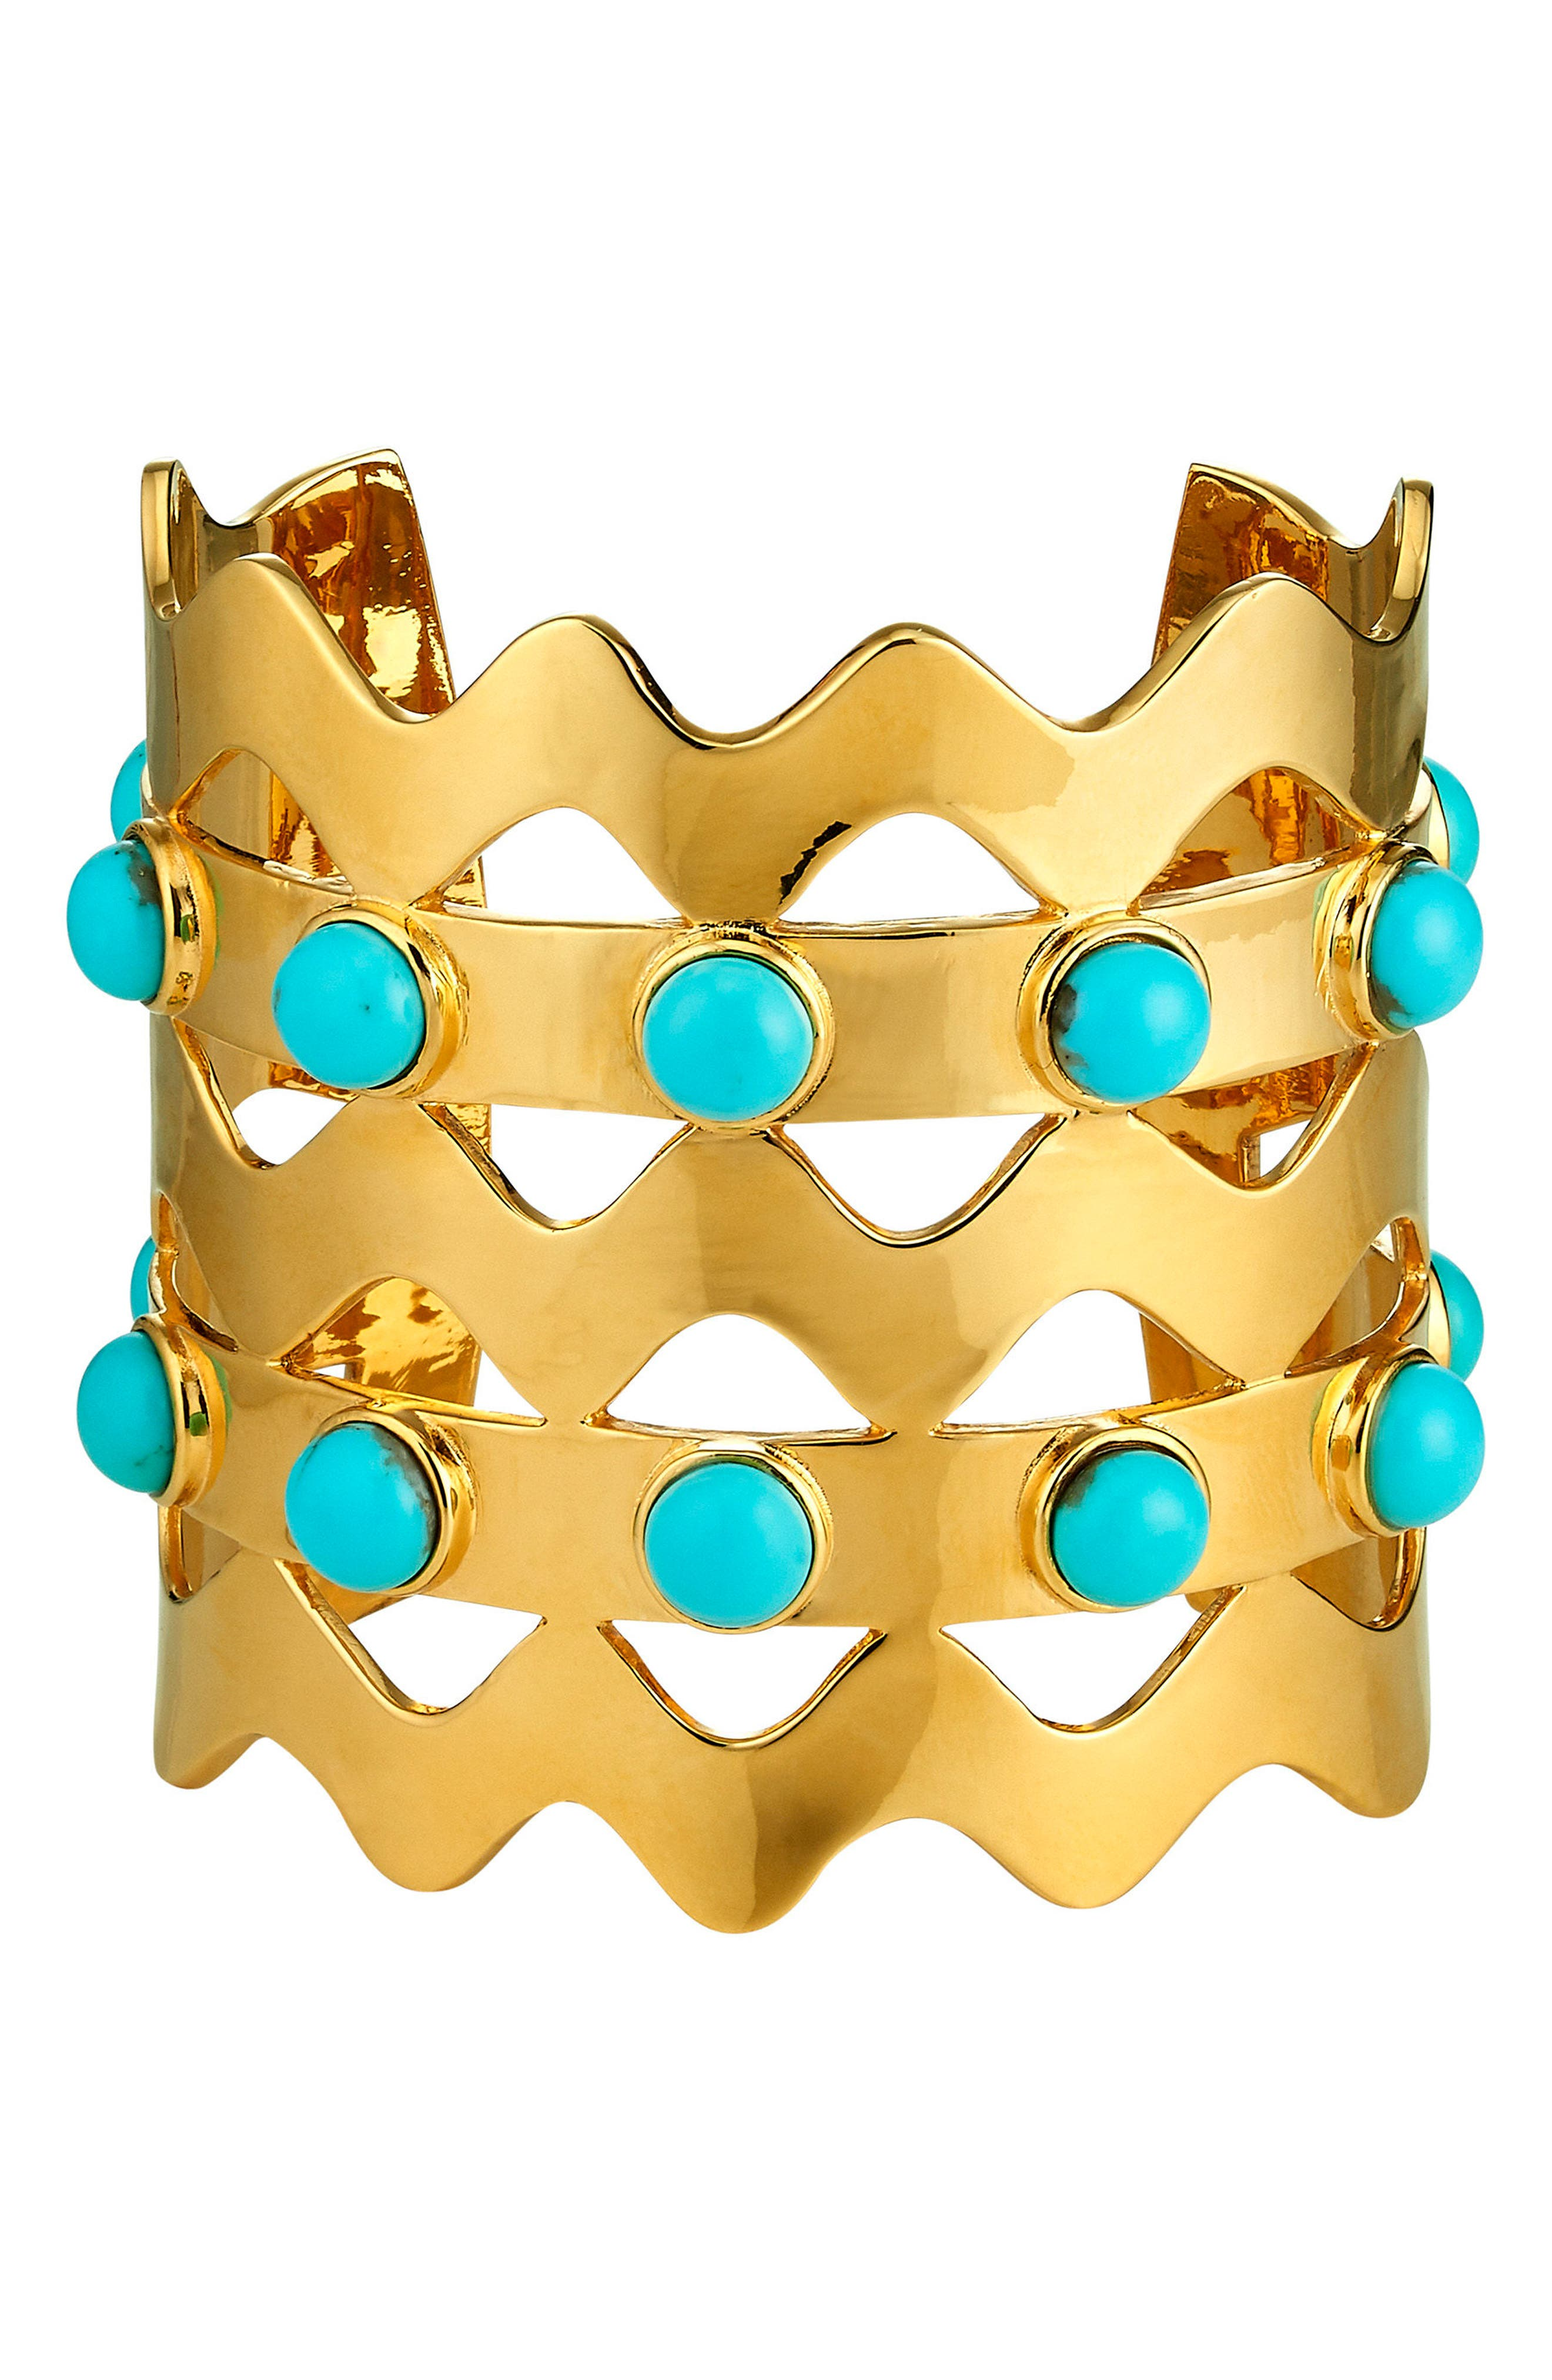 Jagger Cuff Bracelet,                             Main thumbnail 1, color,                             TURQUOISE/ GOLD